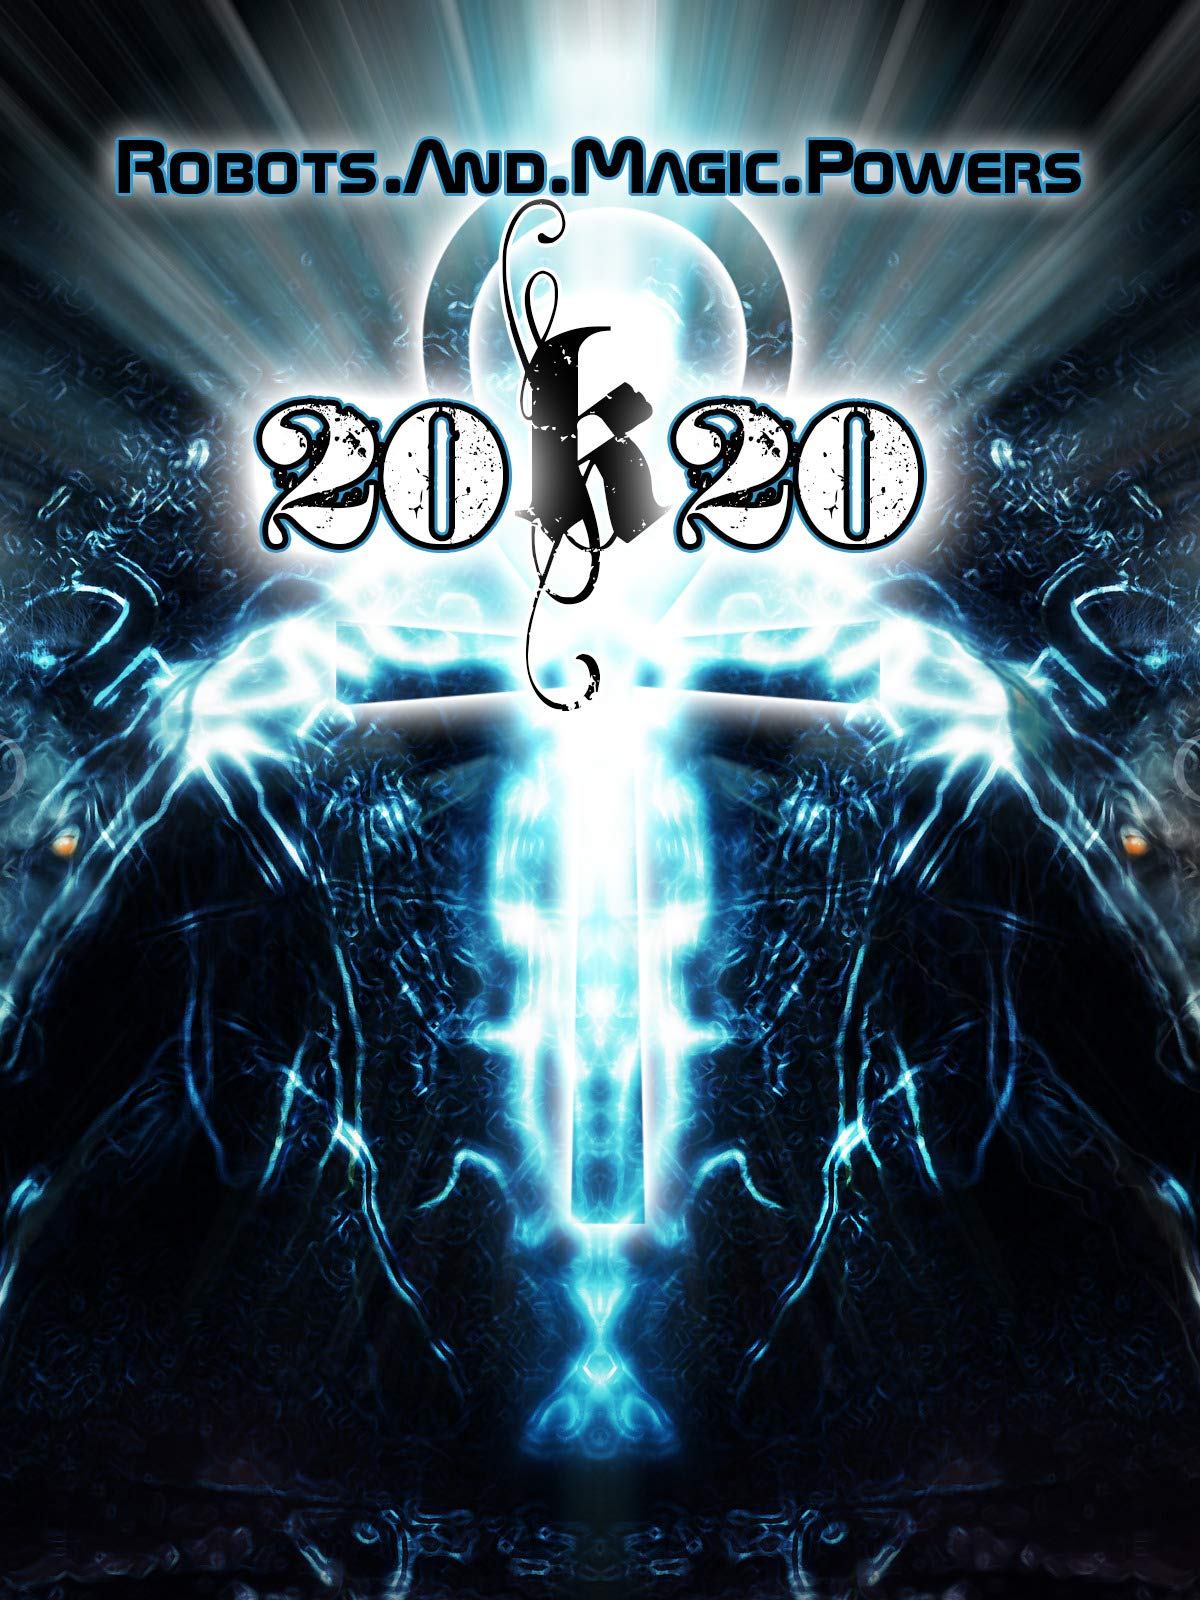 20k20 - Full Concert - Robots And Magic Powers